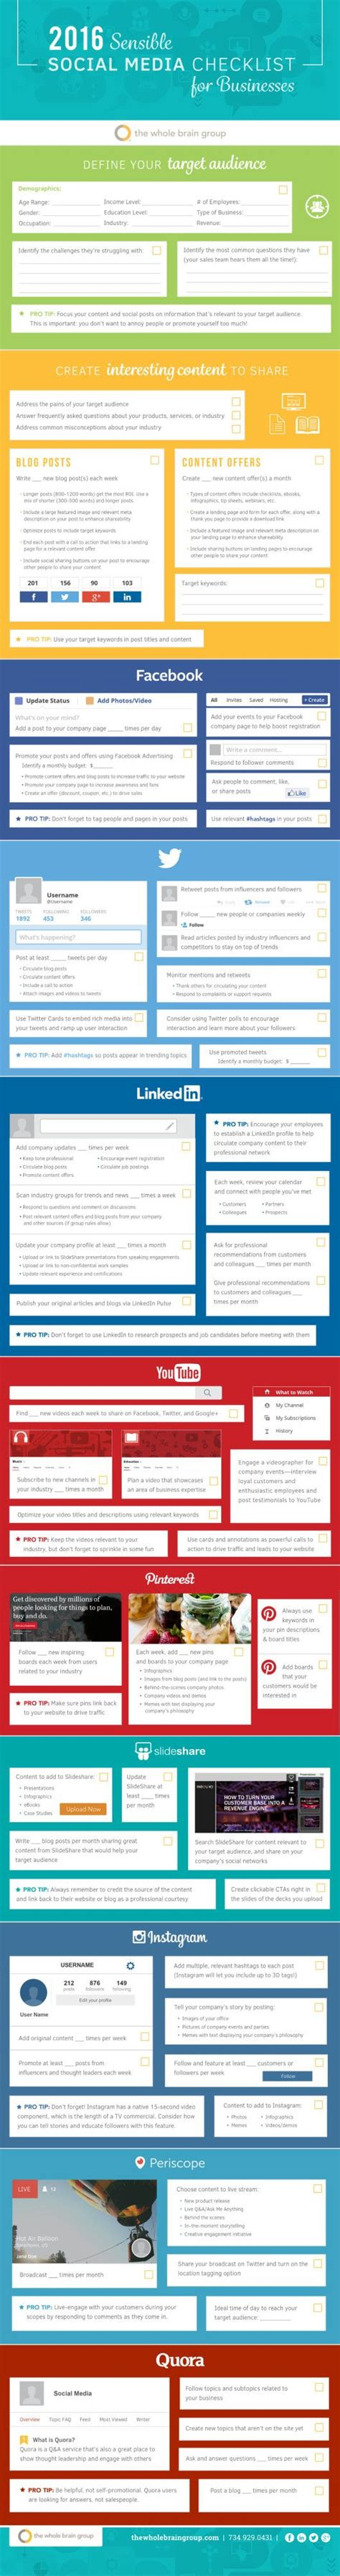 2016 social media marketing infographic infografik the 2016 sensible social media checklist for